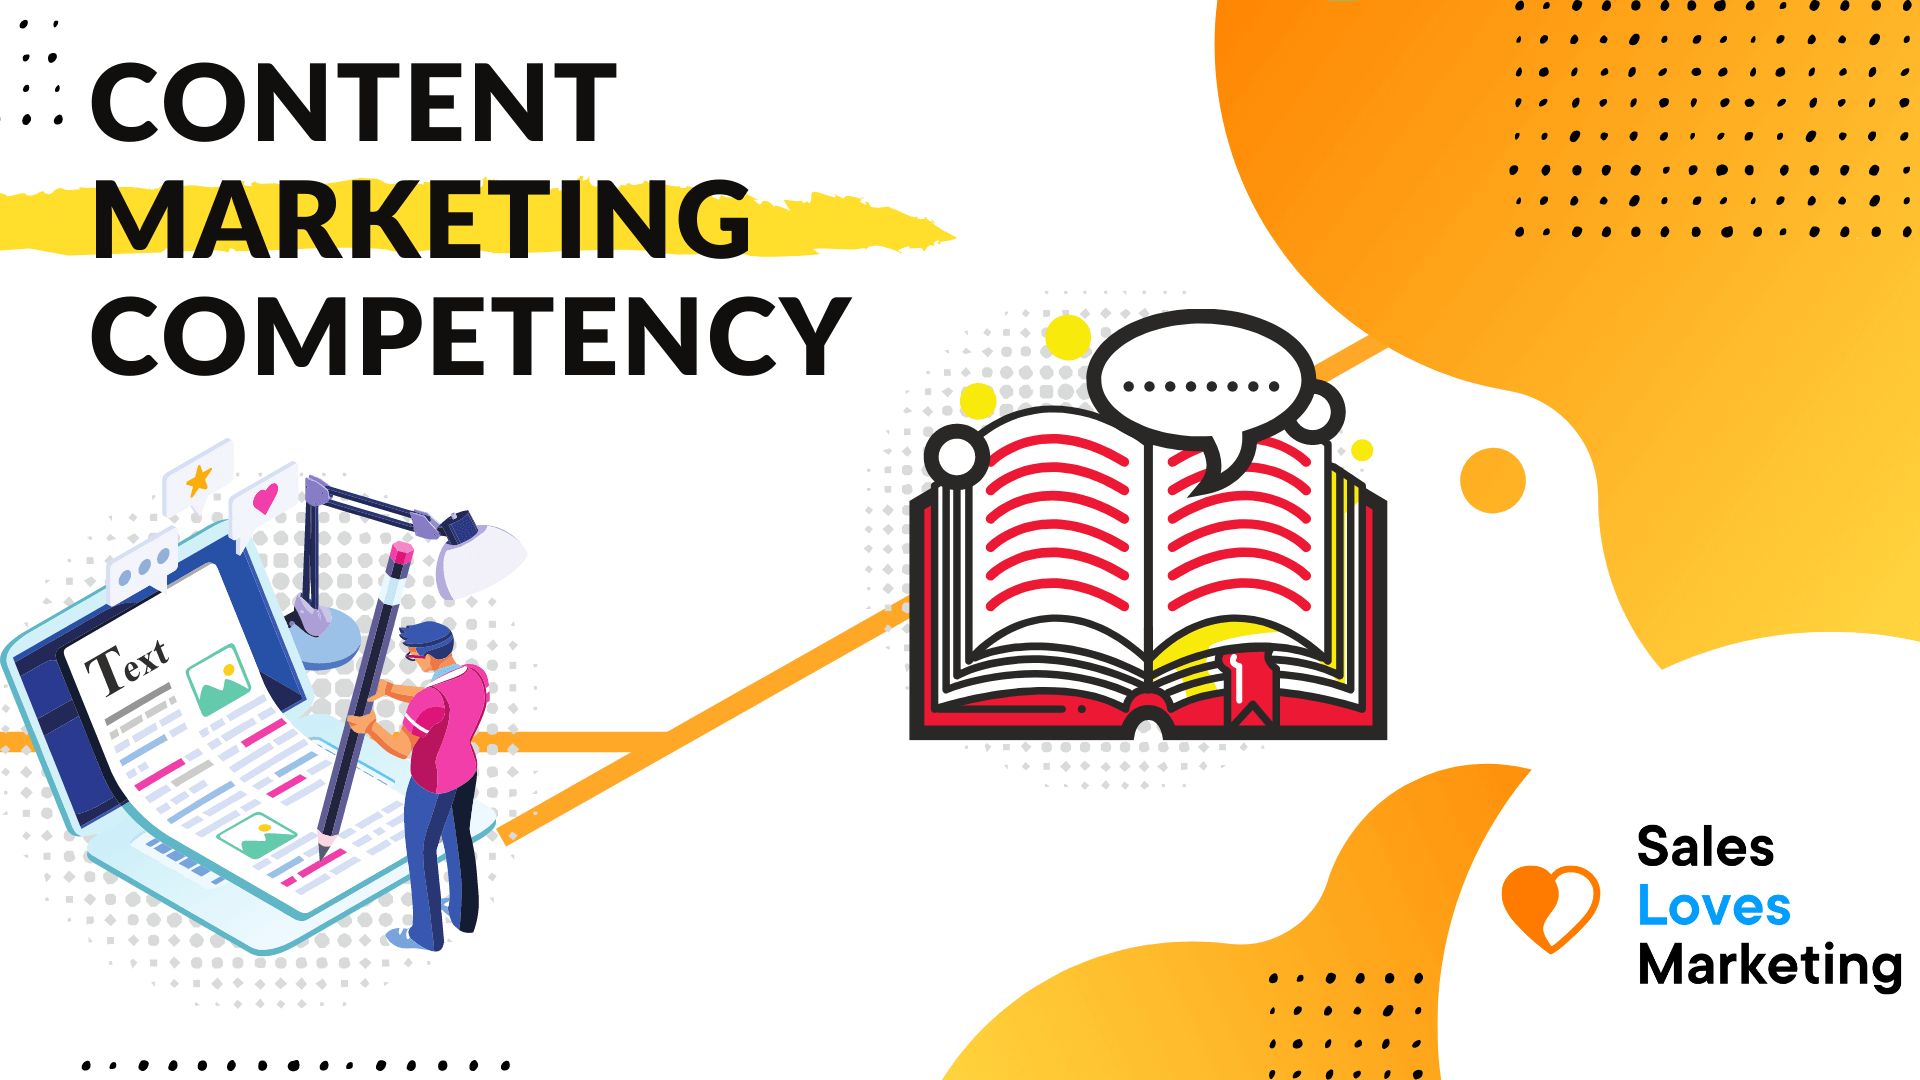 Content Marketing Competency post covid